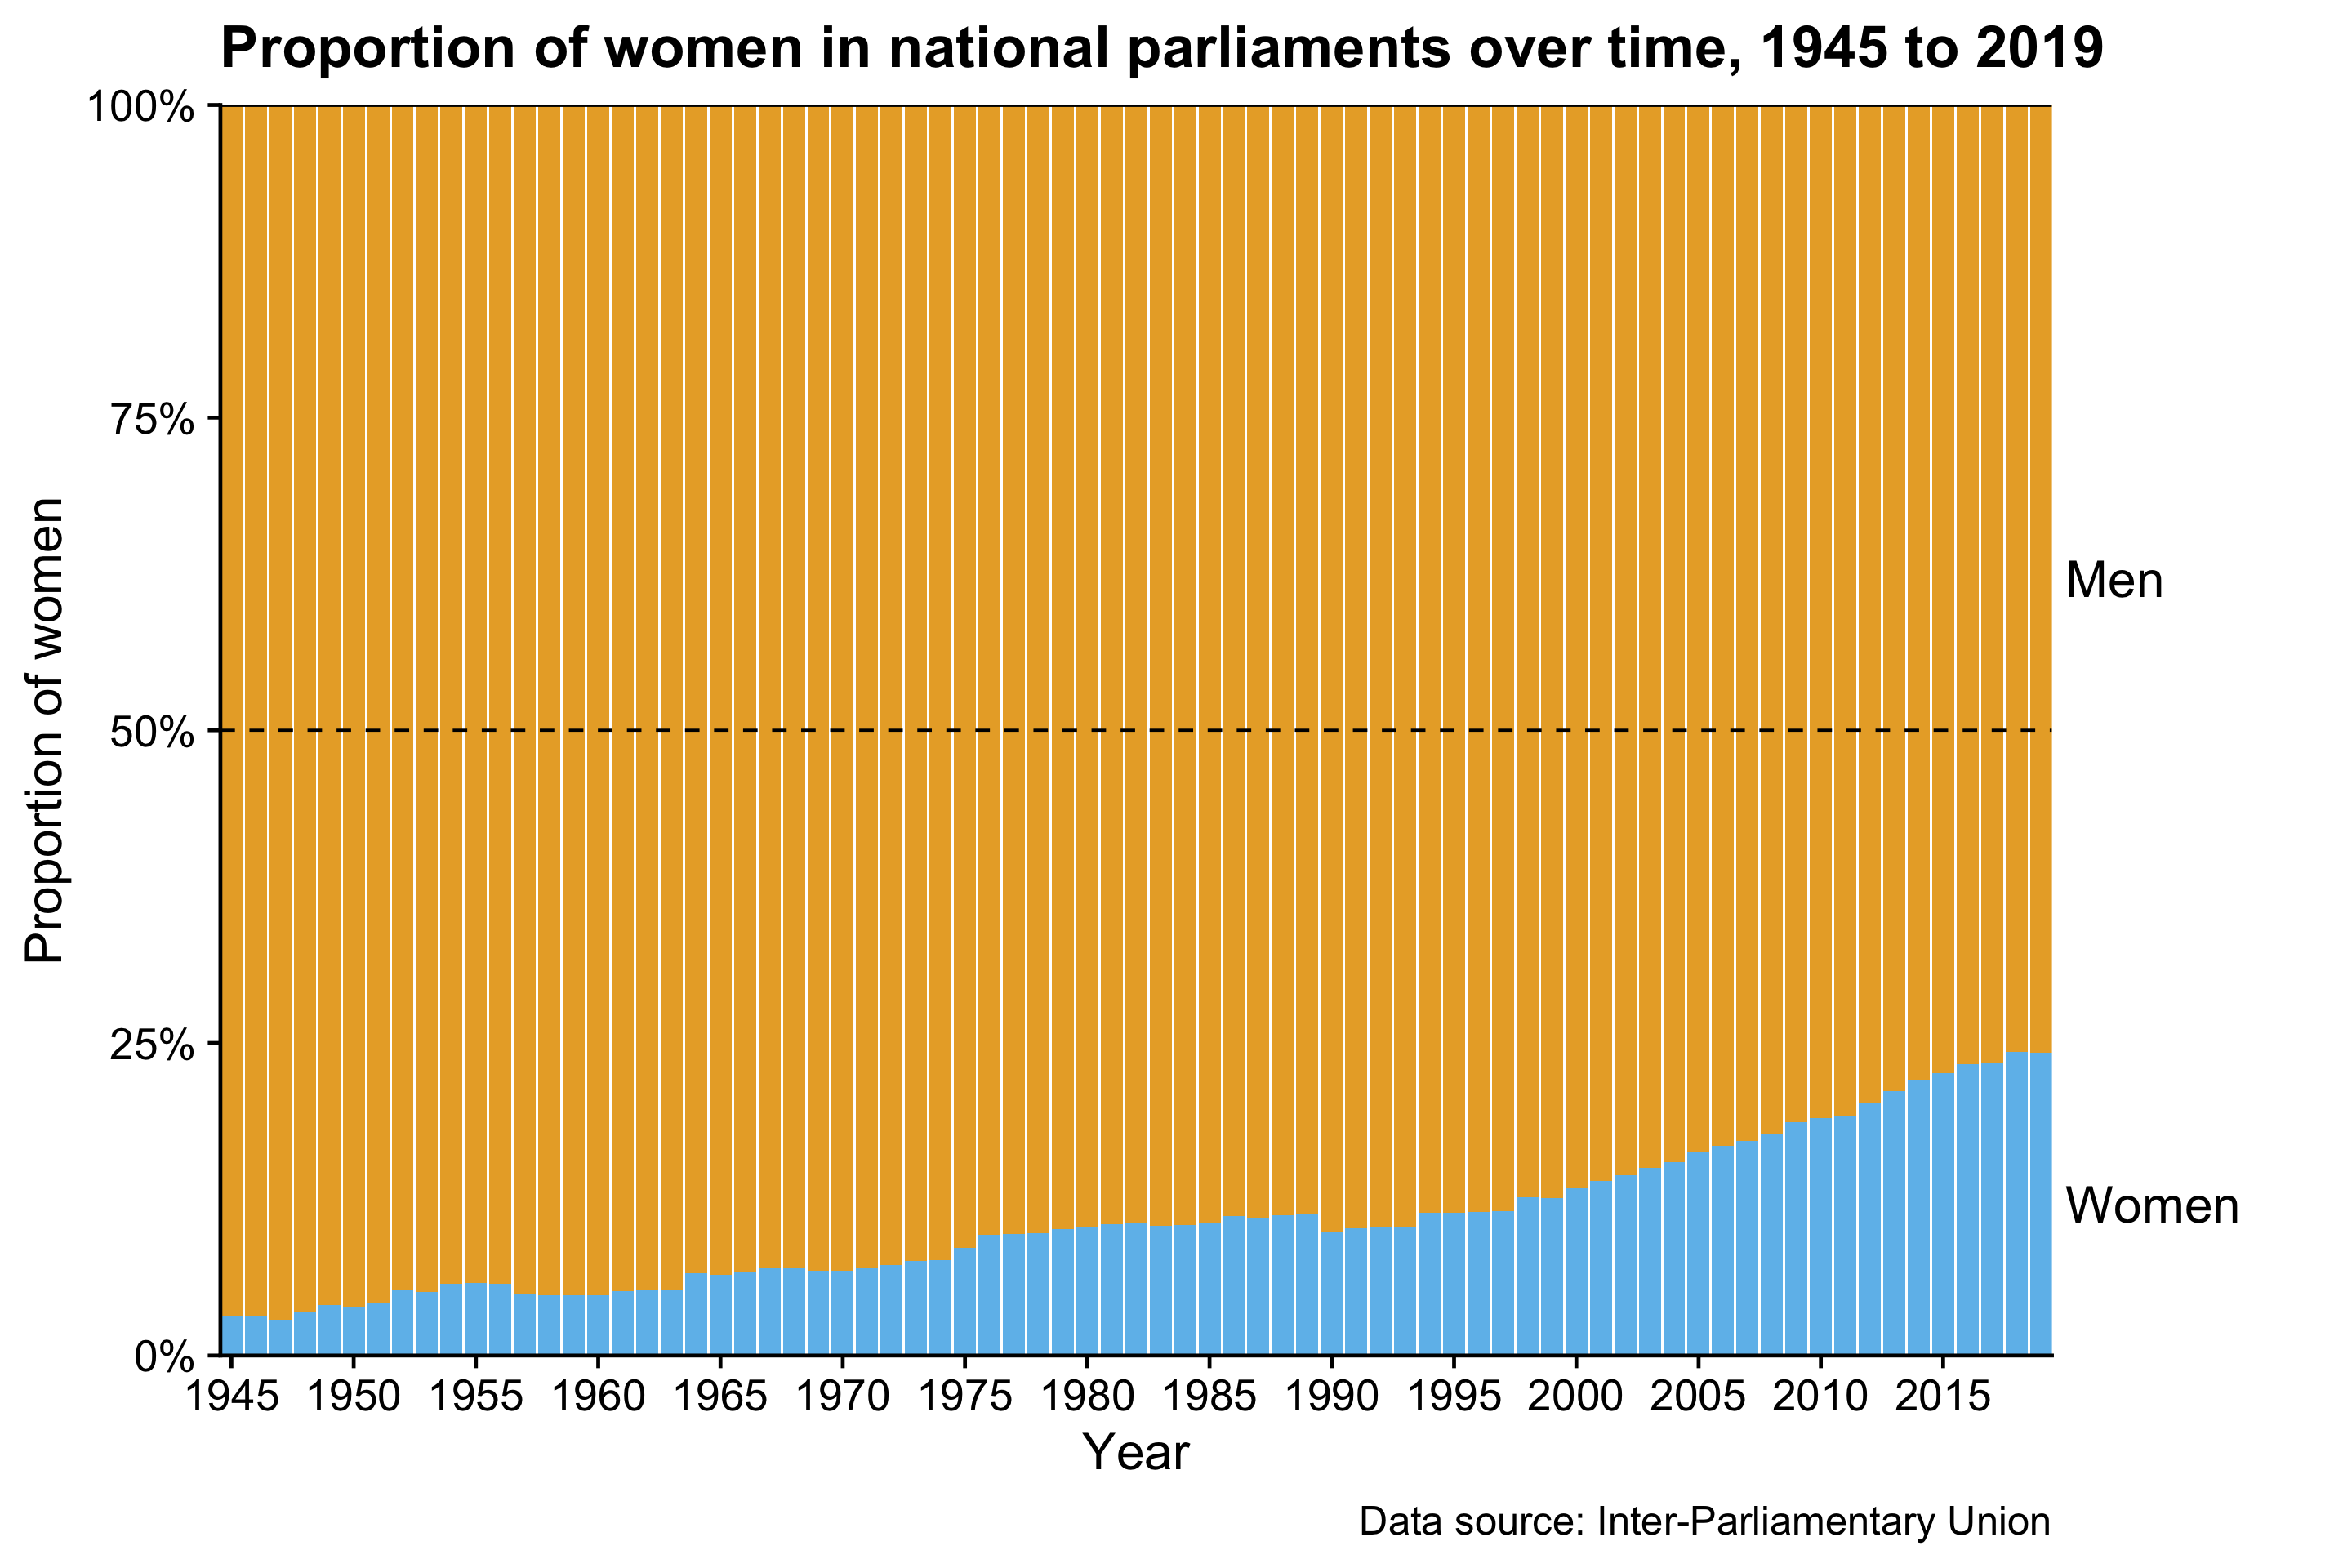 Proportion of women in national parliaments over time, 1945 to 2019